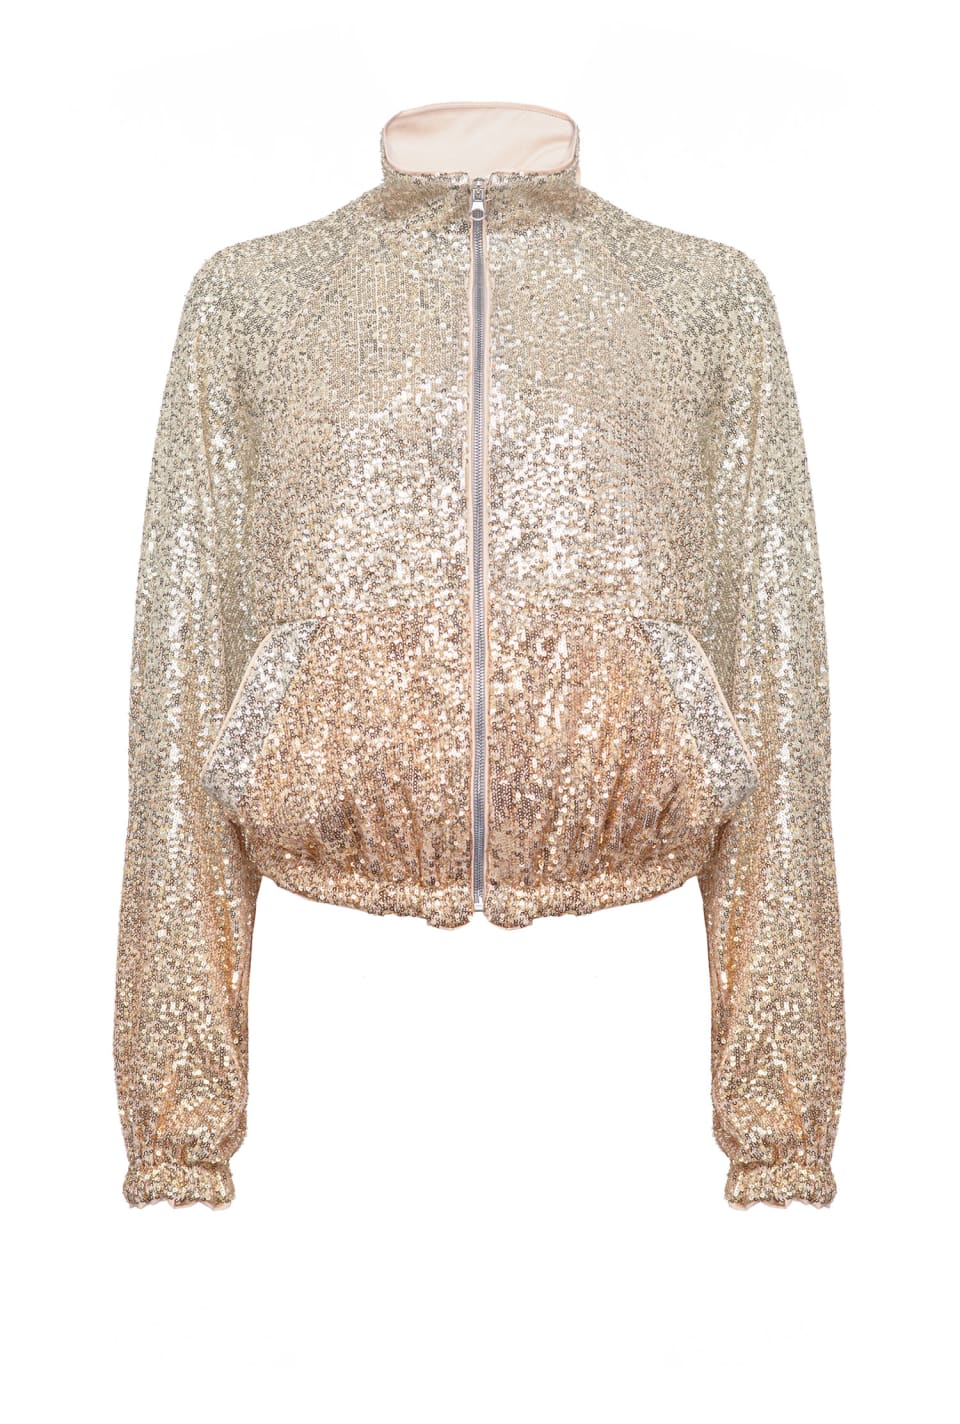 All-over ombré sequin raincoat - Pinko